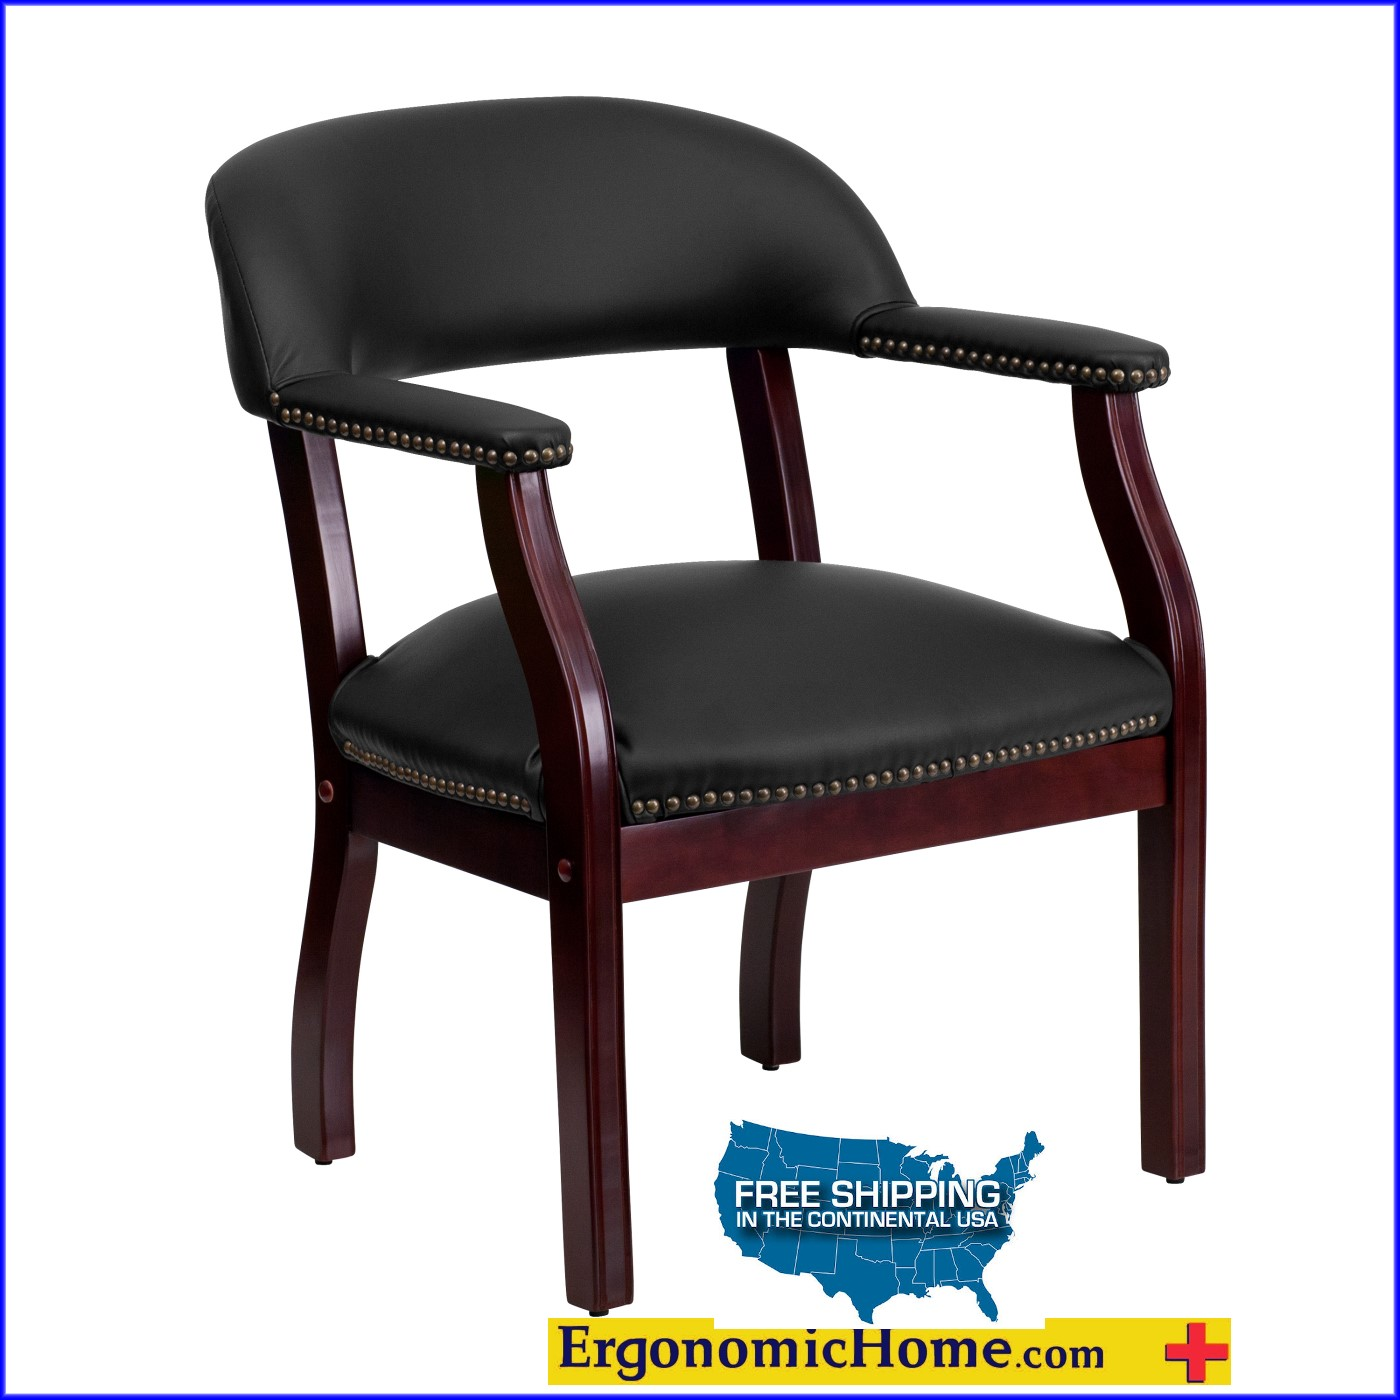 Ergonomic Home Black Vinyl Luxurious Conference Chair / Guest Chair EH-B-Z105-BLACK-GG .